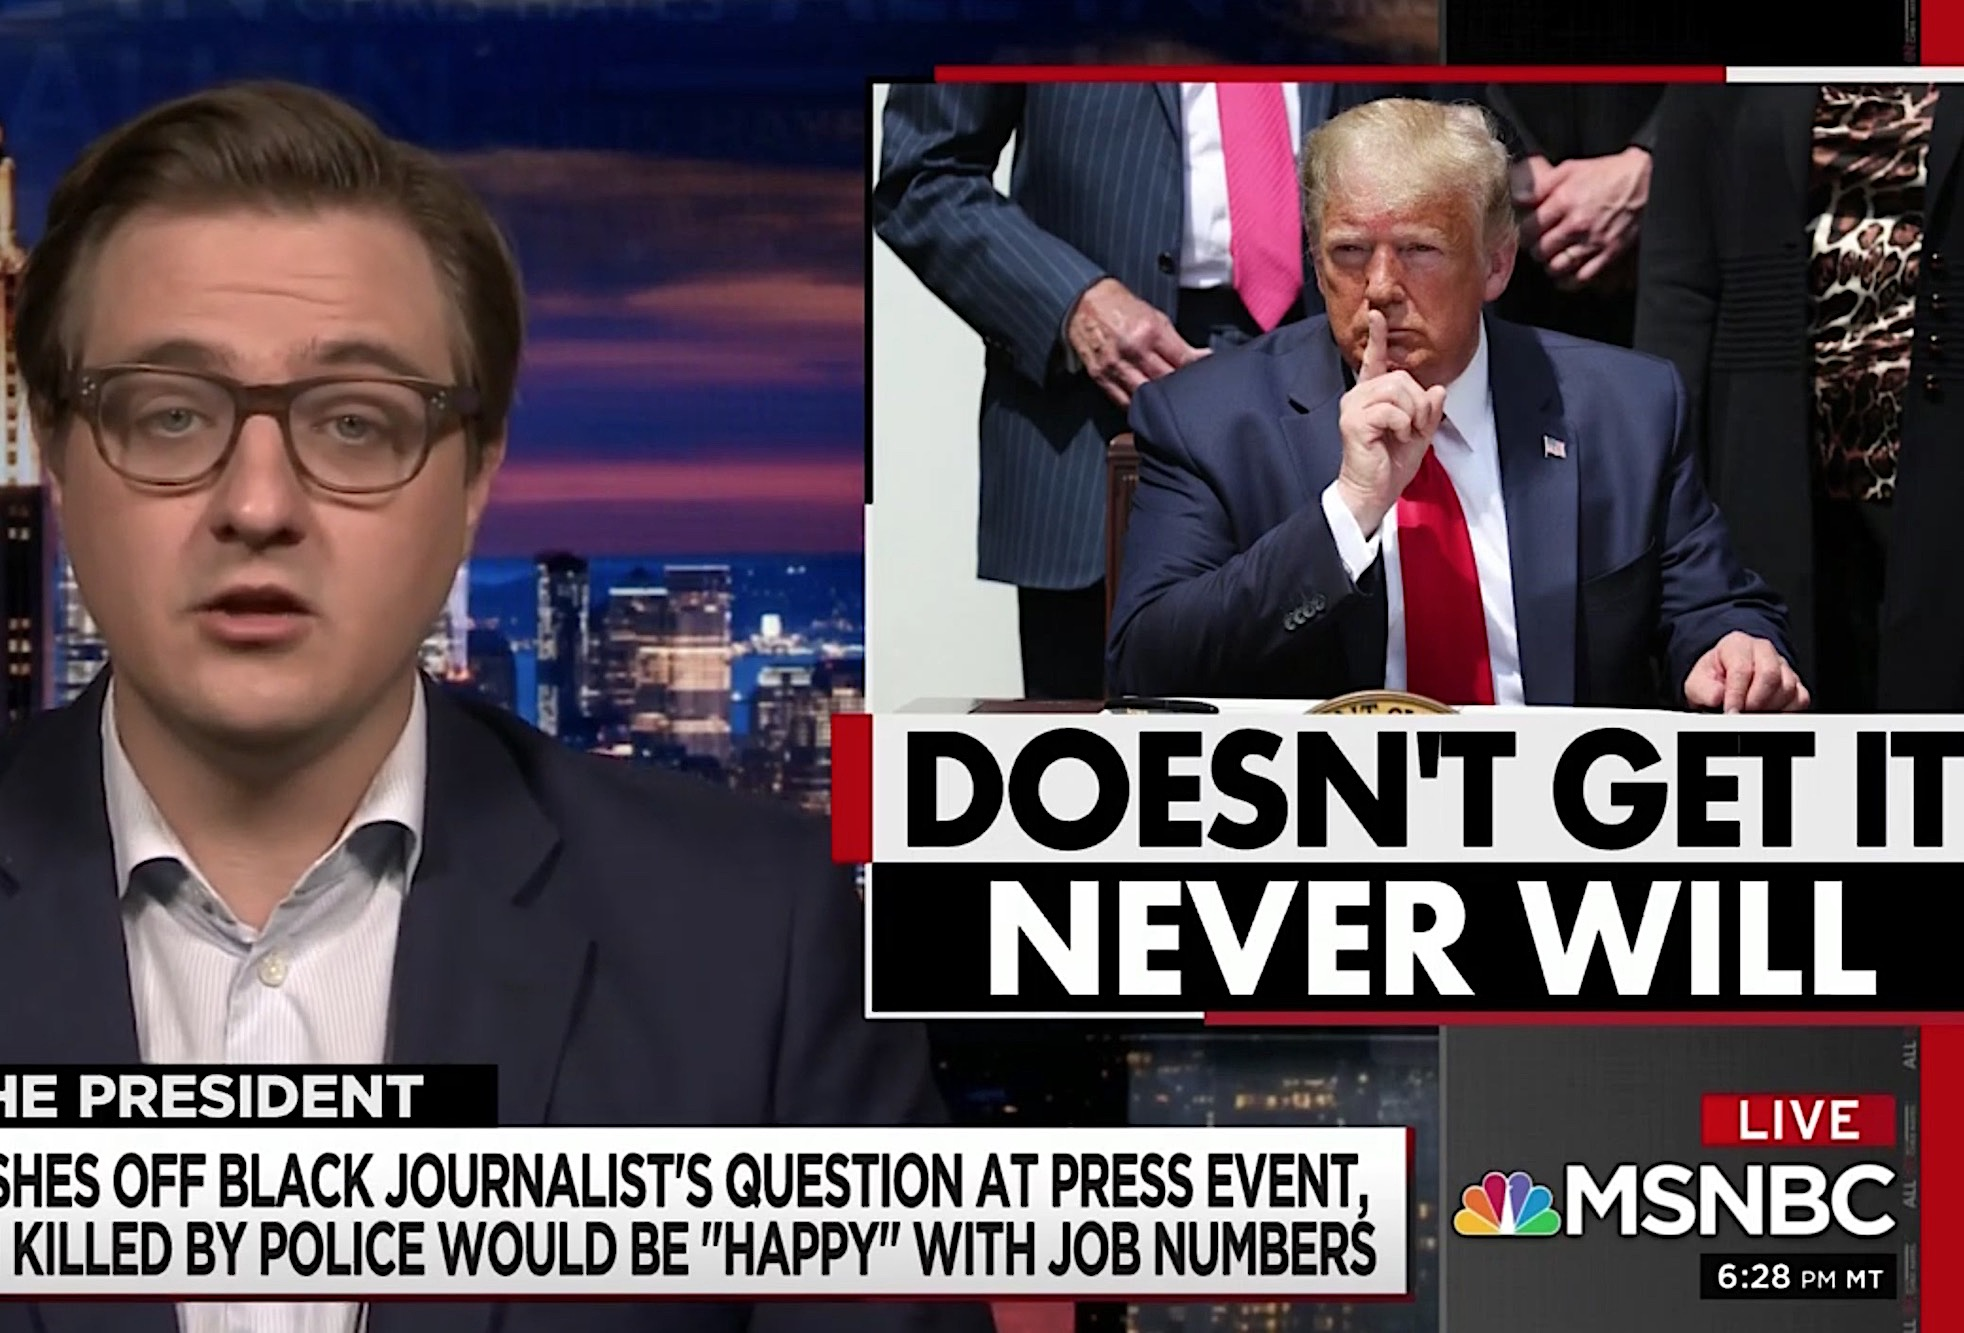 Chris Hayes Exposes Trump's Incoherence by Simply Reading His Words Aloud